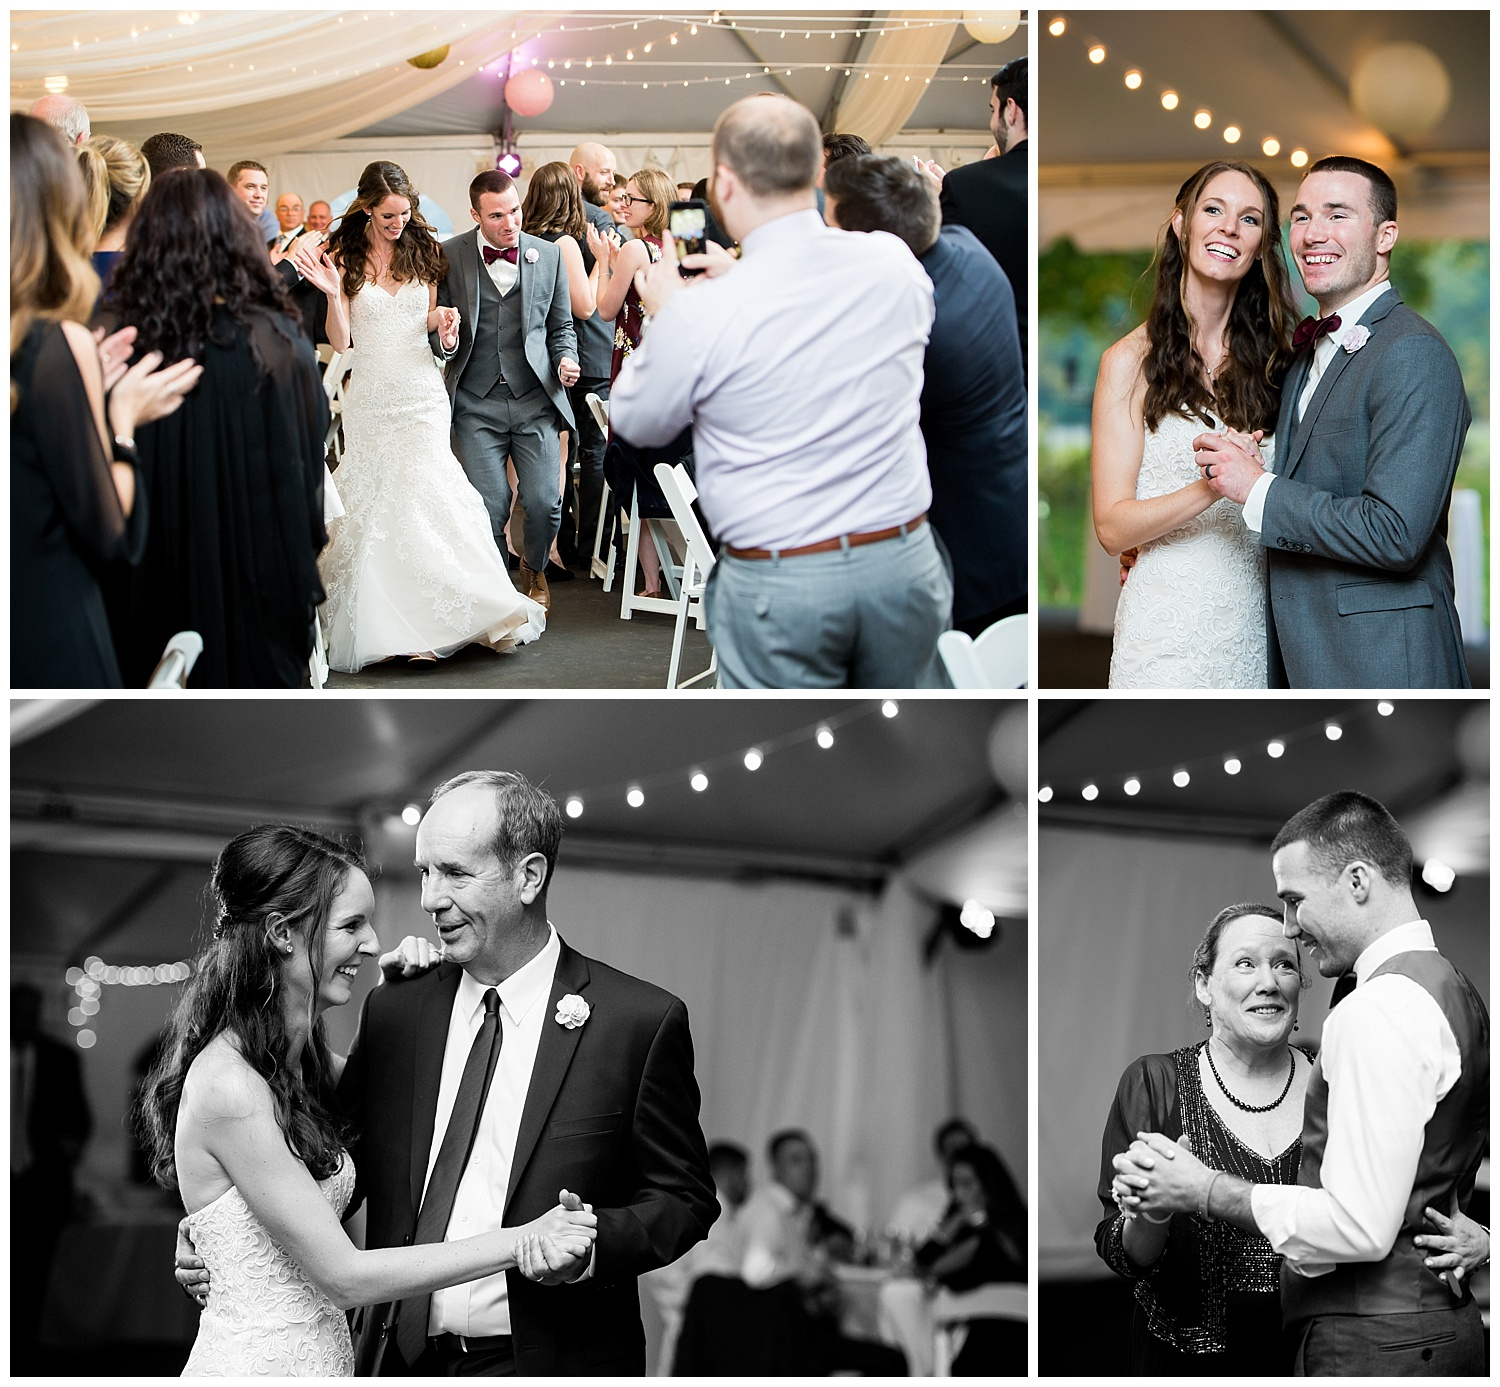 intros and first dance,social media,